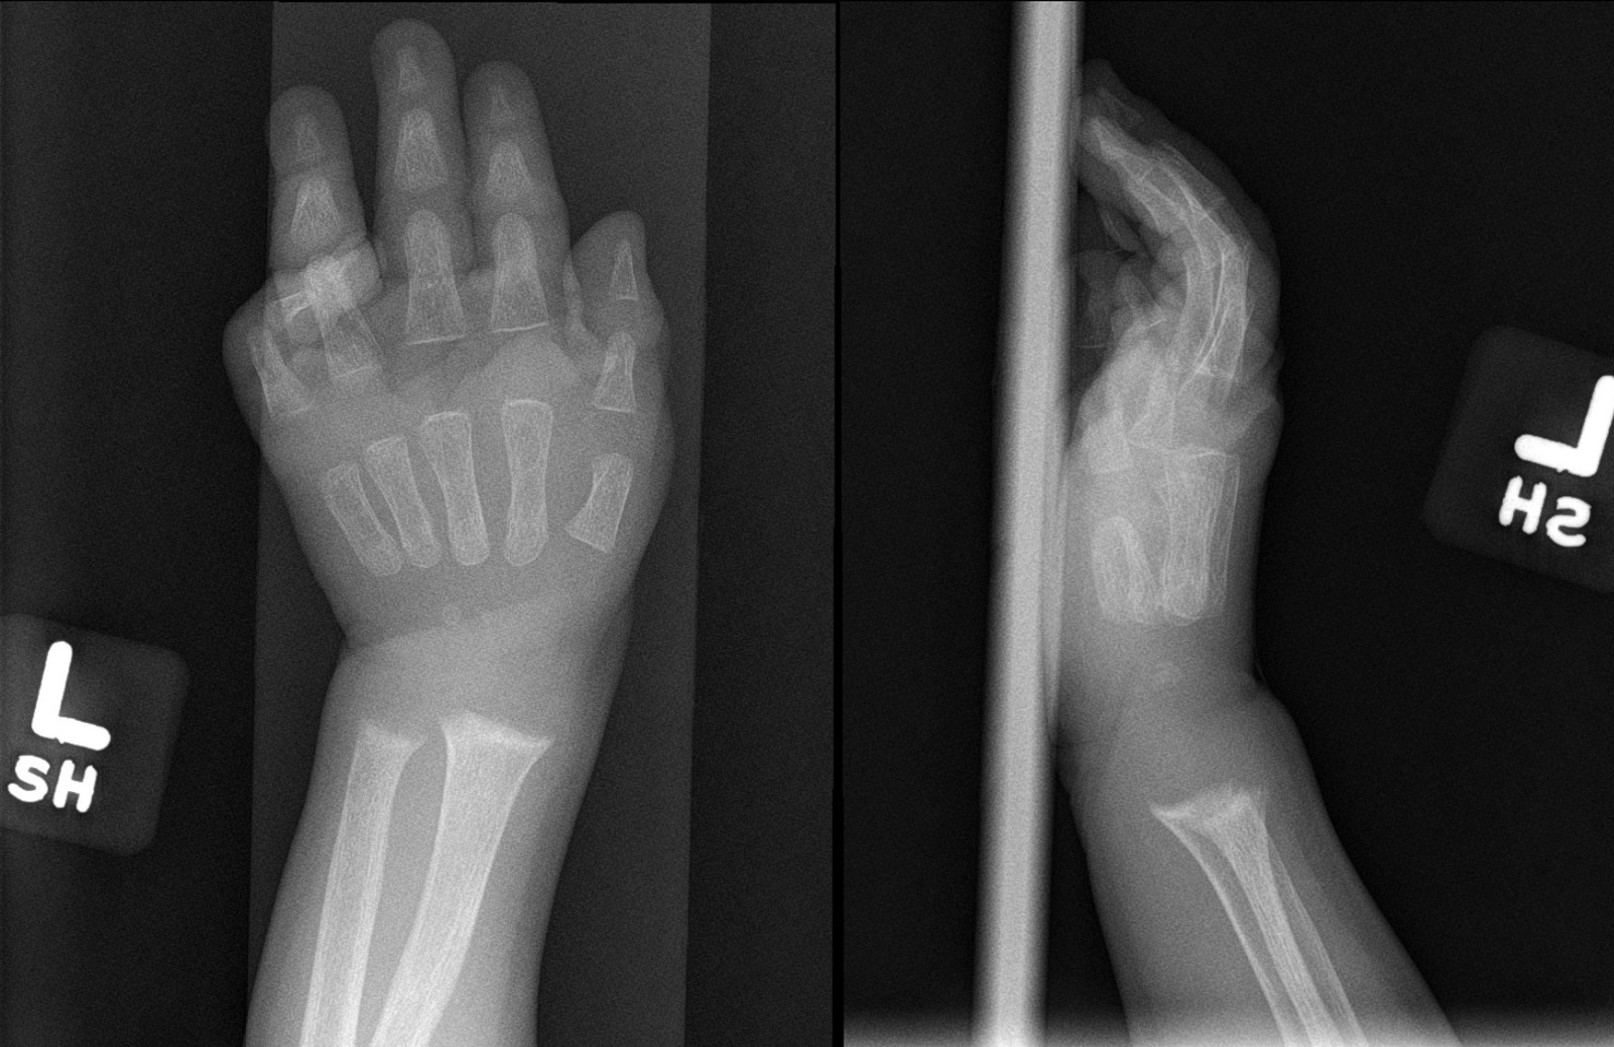 Radiograph of the left wrist (anteroposterior and lateral views) showing metaphyseal widening and irregularity of the distal radius and ulna indicative of rickets